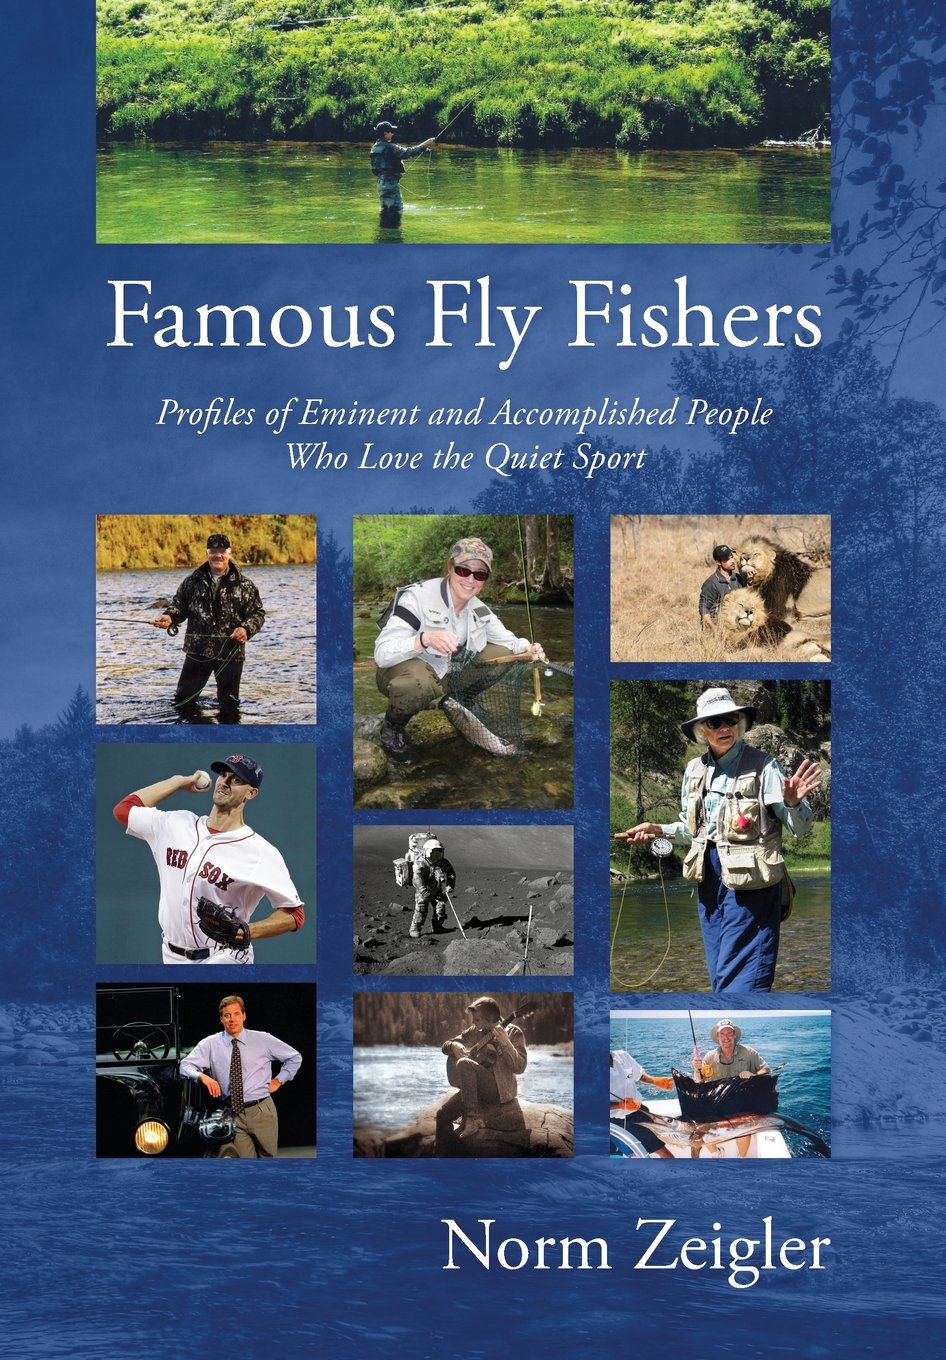 Download Famous Fly Fishers: Profiles of Eminent and Accomplished People Who Love the Quiet Sport PDF